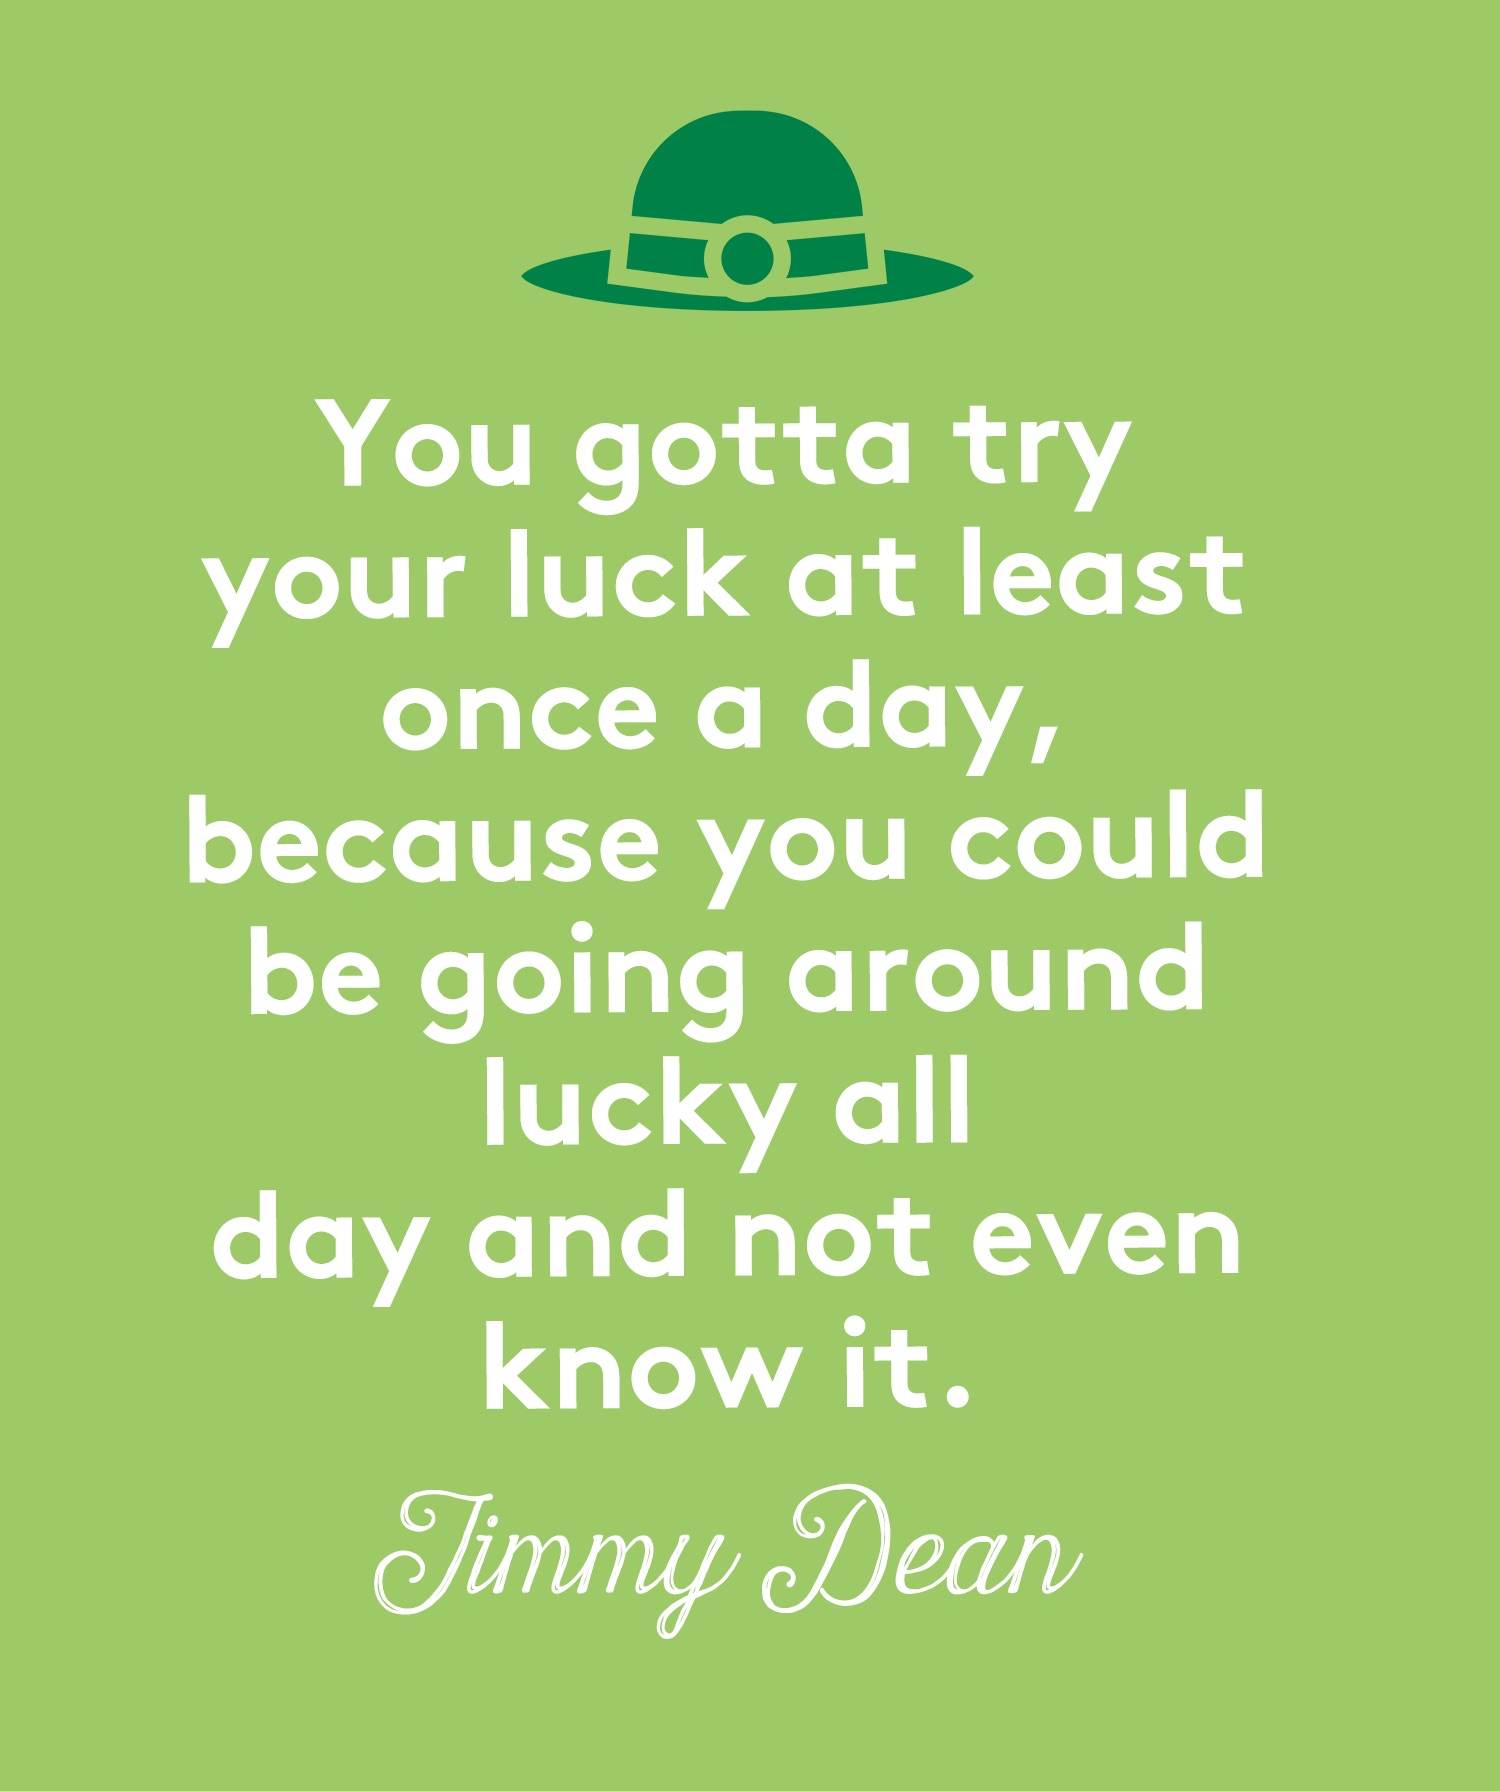 St. Patrick's Day Quotes, Dean